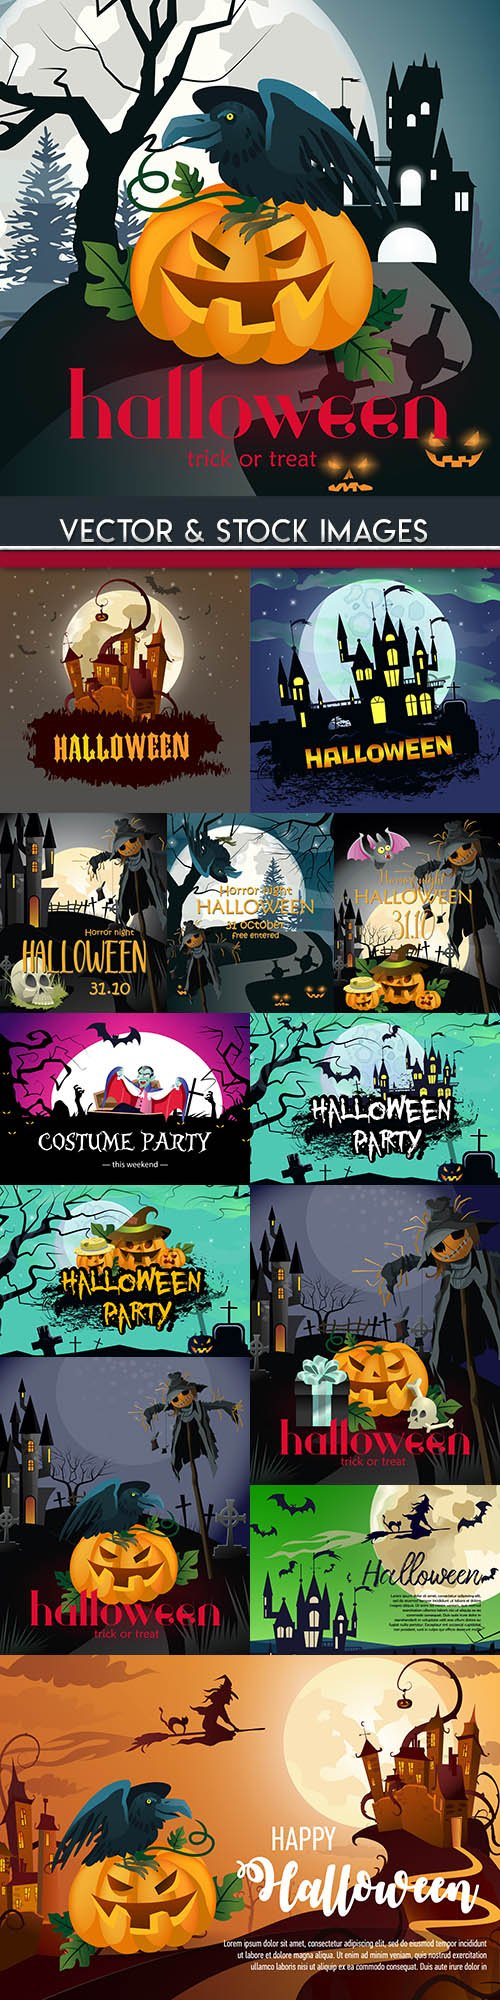 Happy Halloween holiday illustration collection 27